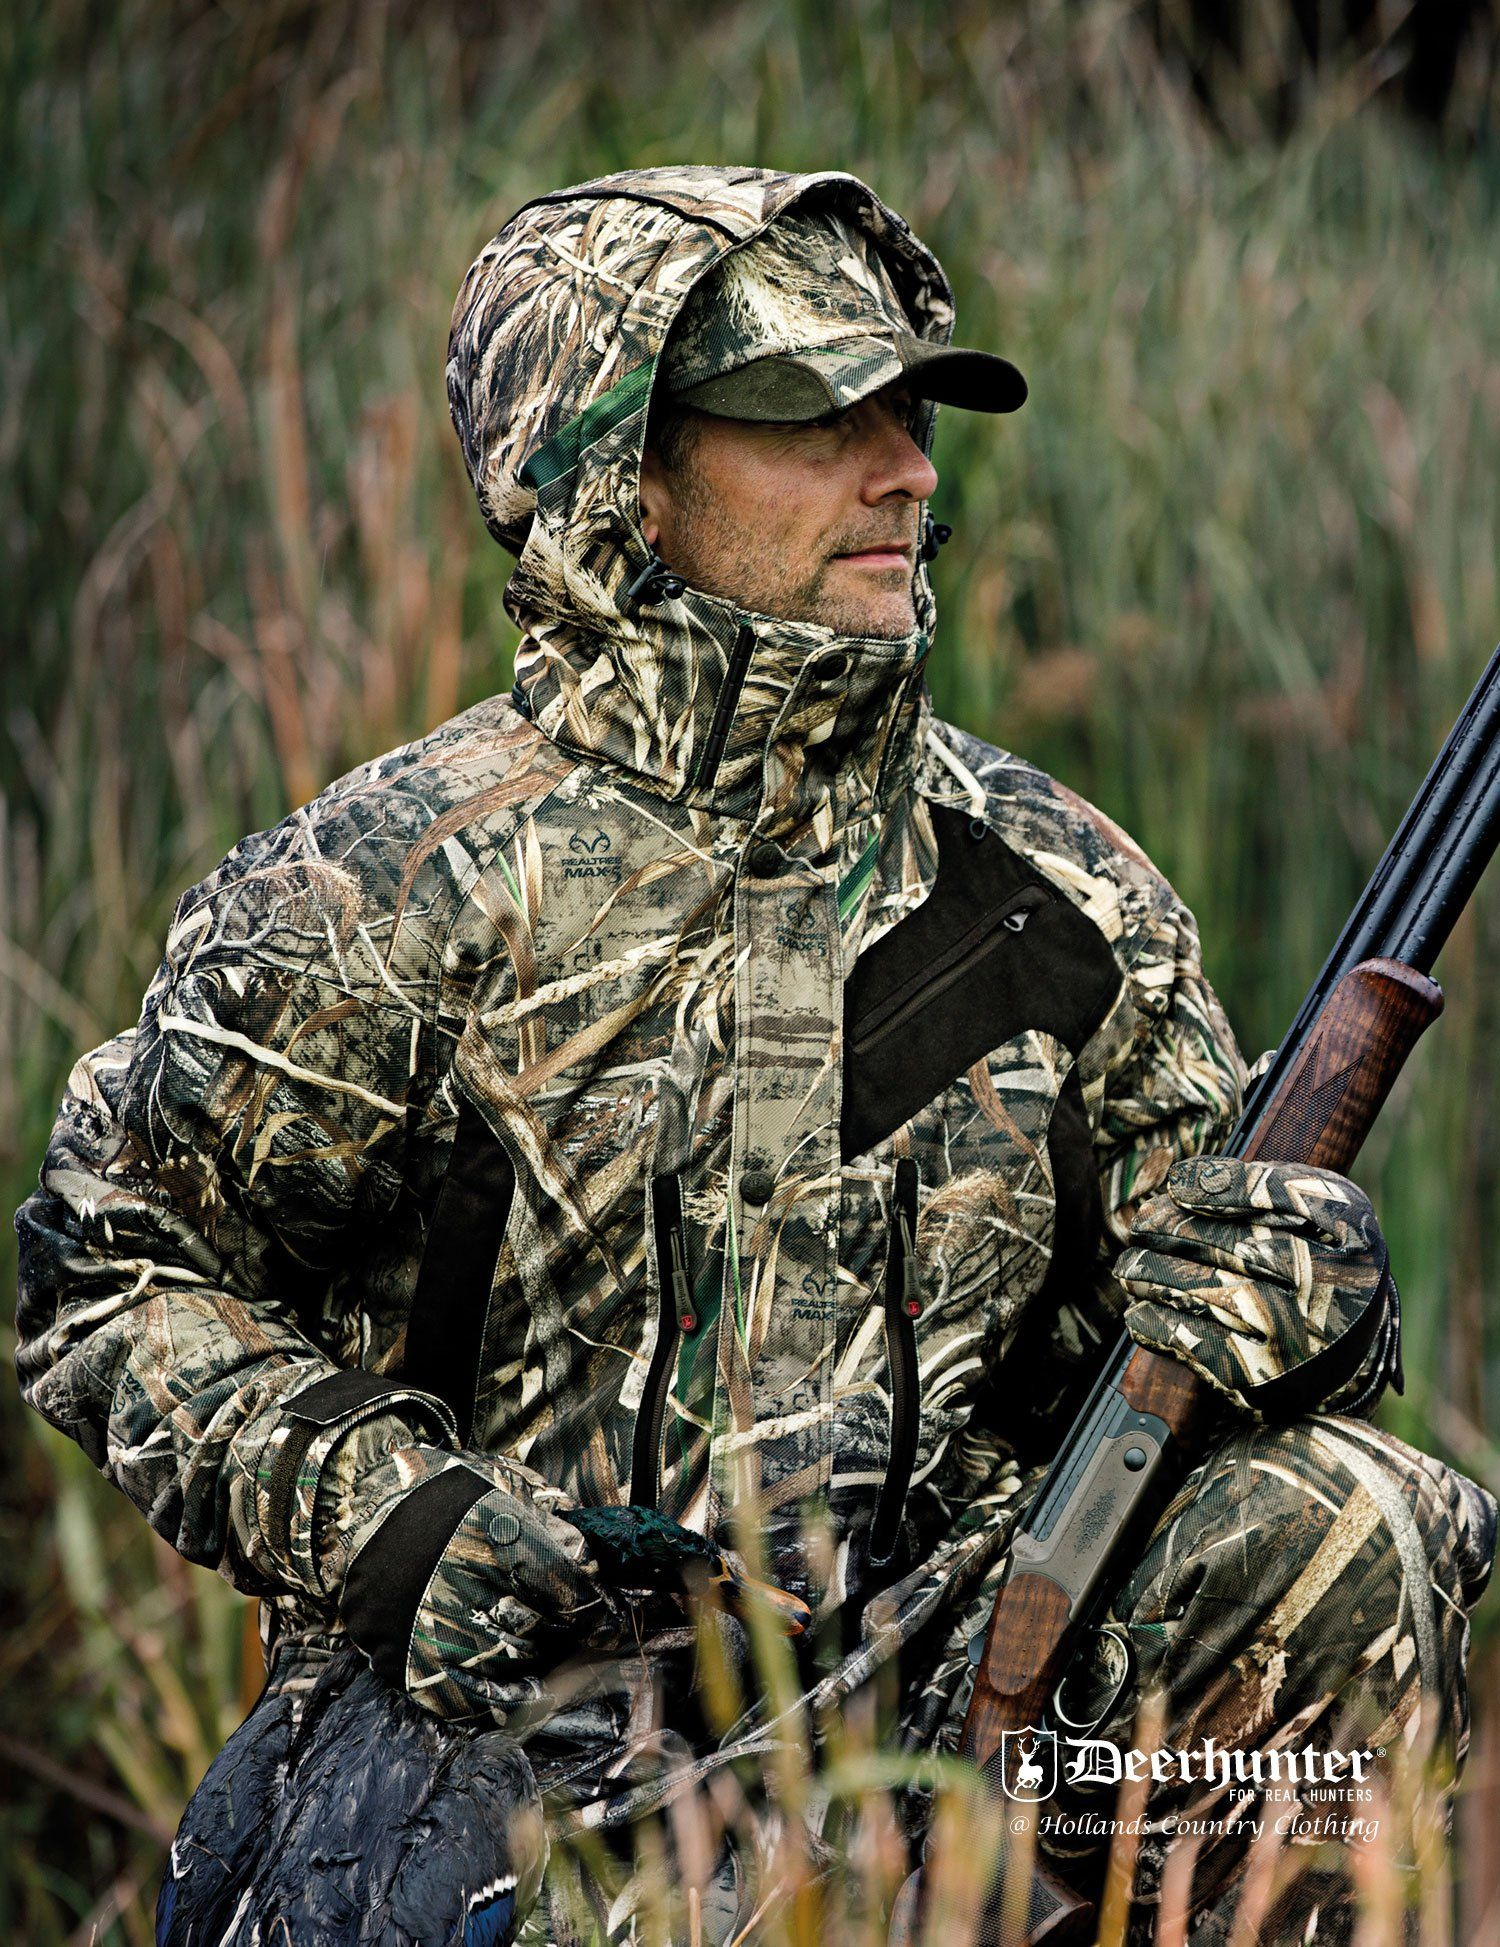 16504c22d6630 The ultimate shooting/hunting coat to keep you warm and elusive. With an  abundance of technical features. Check it out at Hollands Country Clothing.